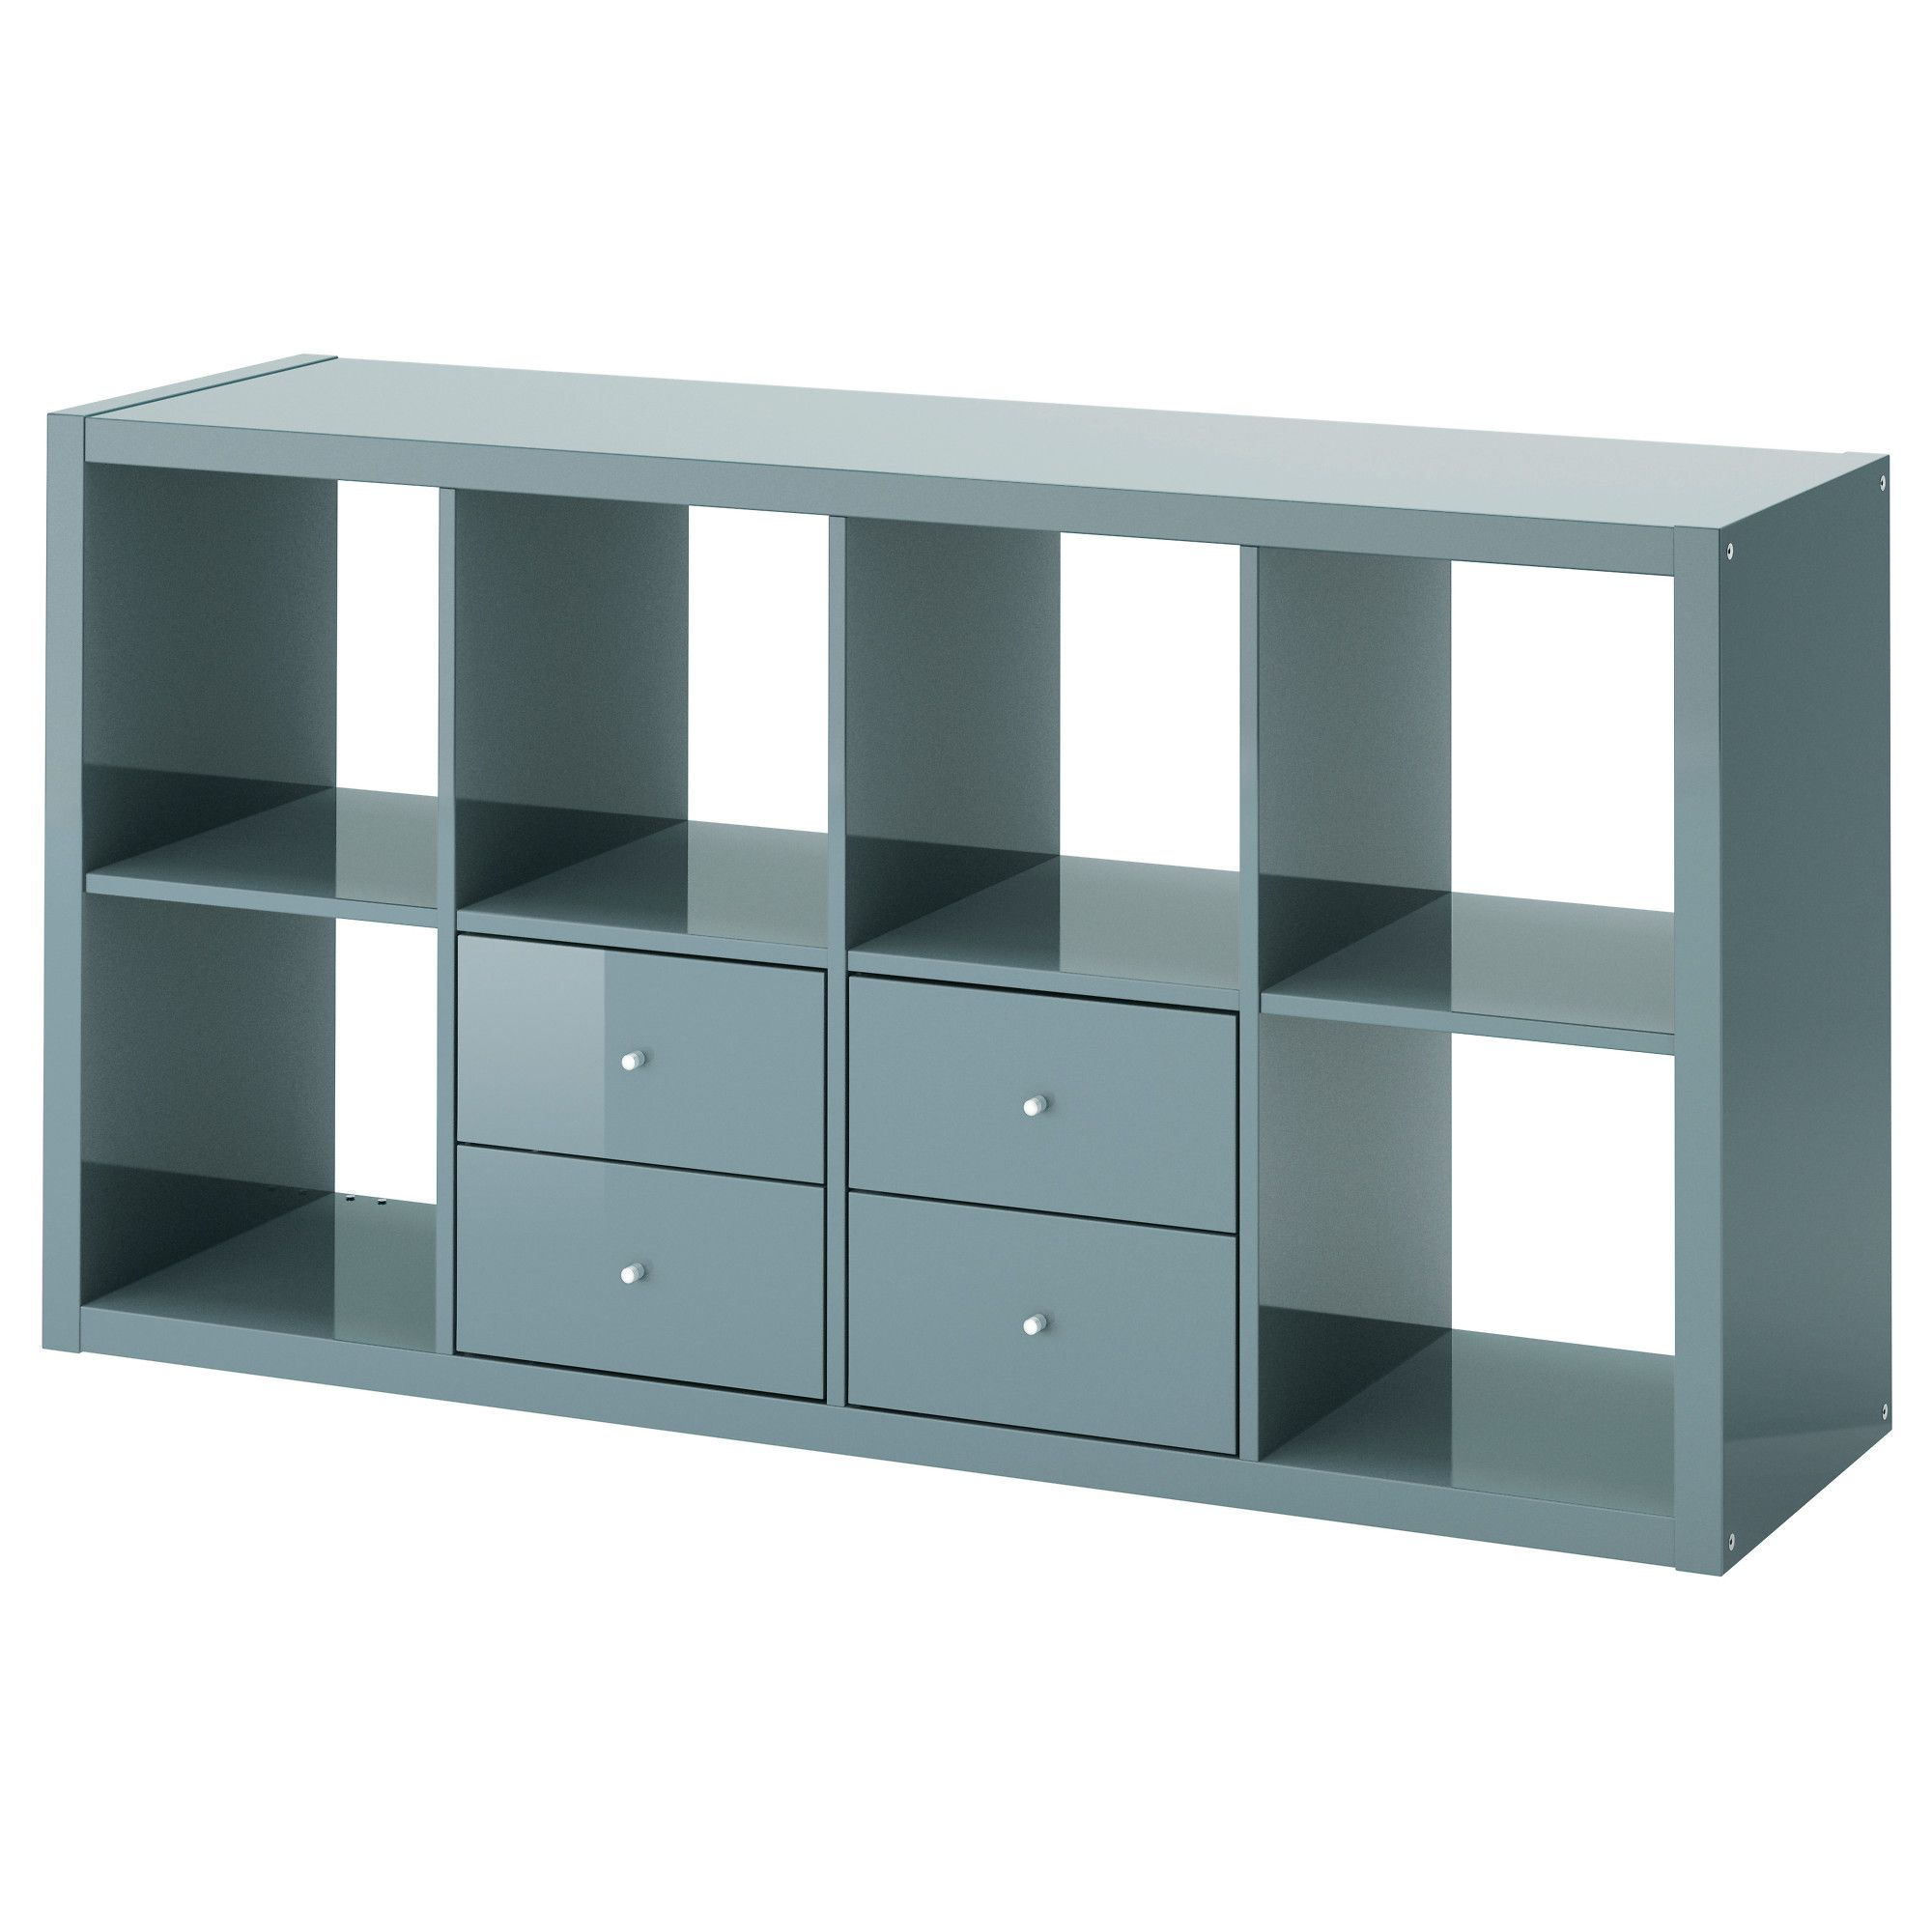 Ikea Regale Kallax ikea kallax shelving unit with 2 inserts living room ideas